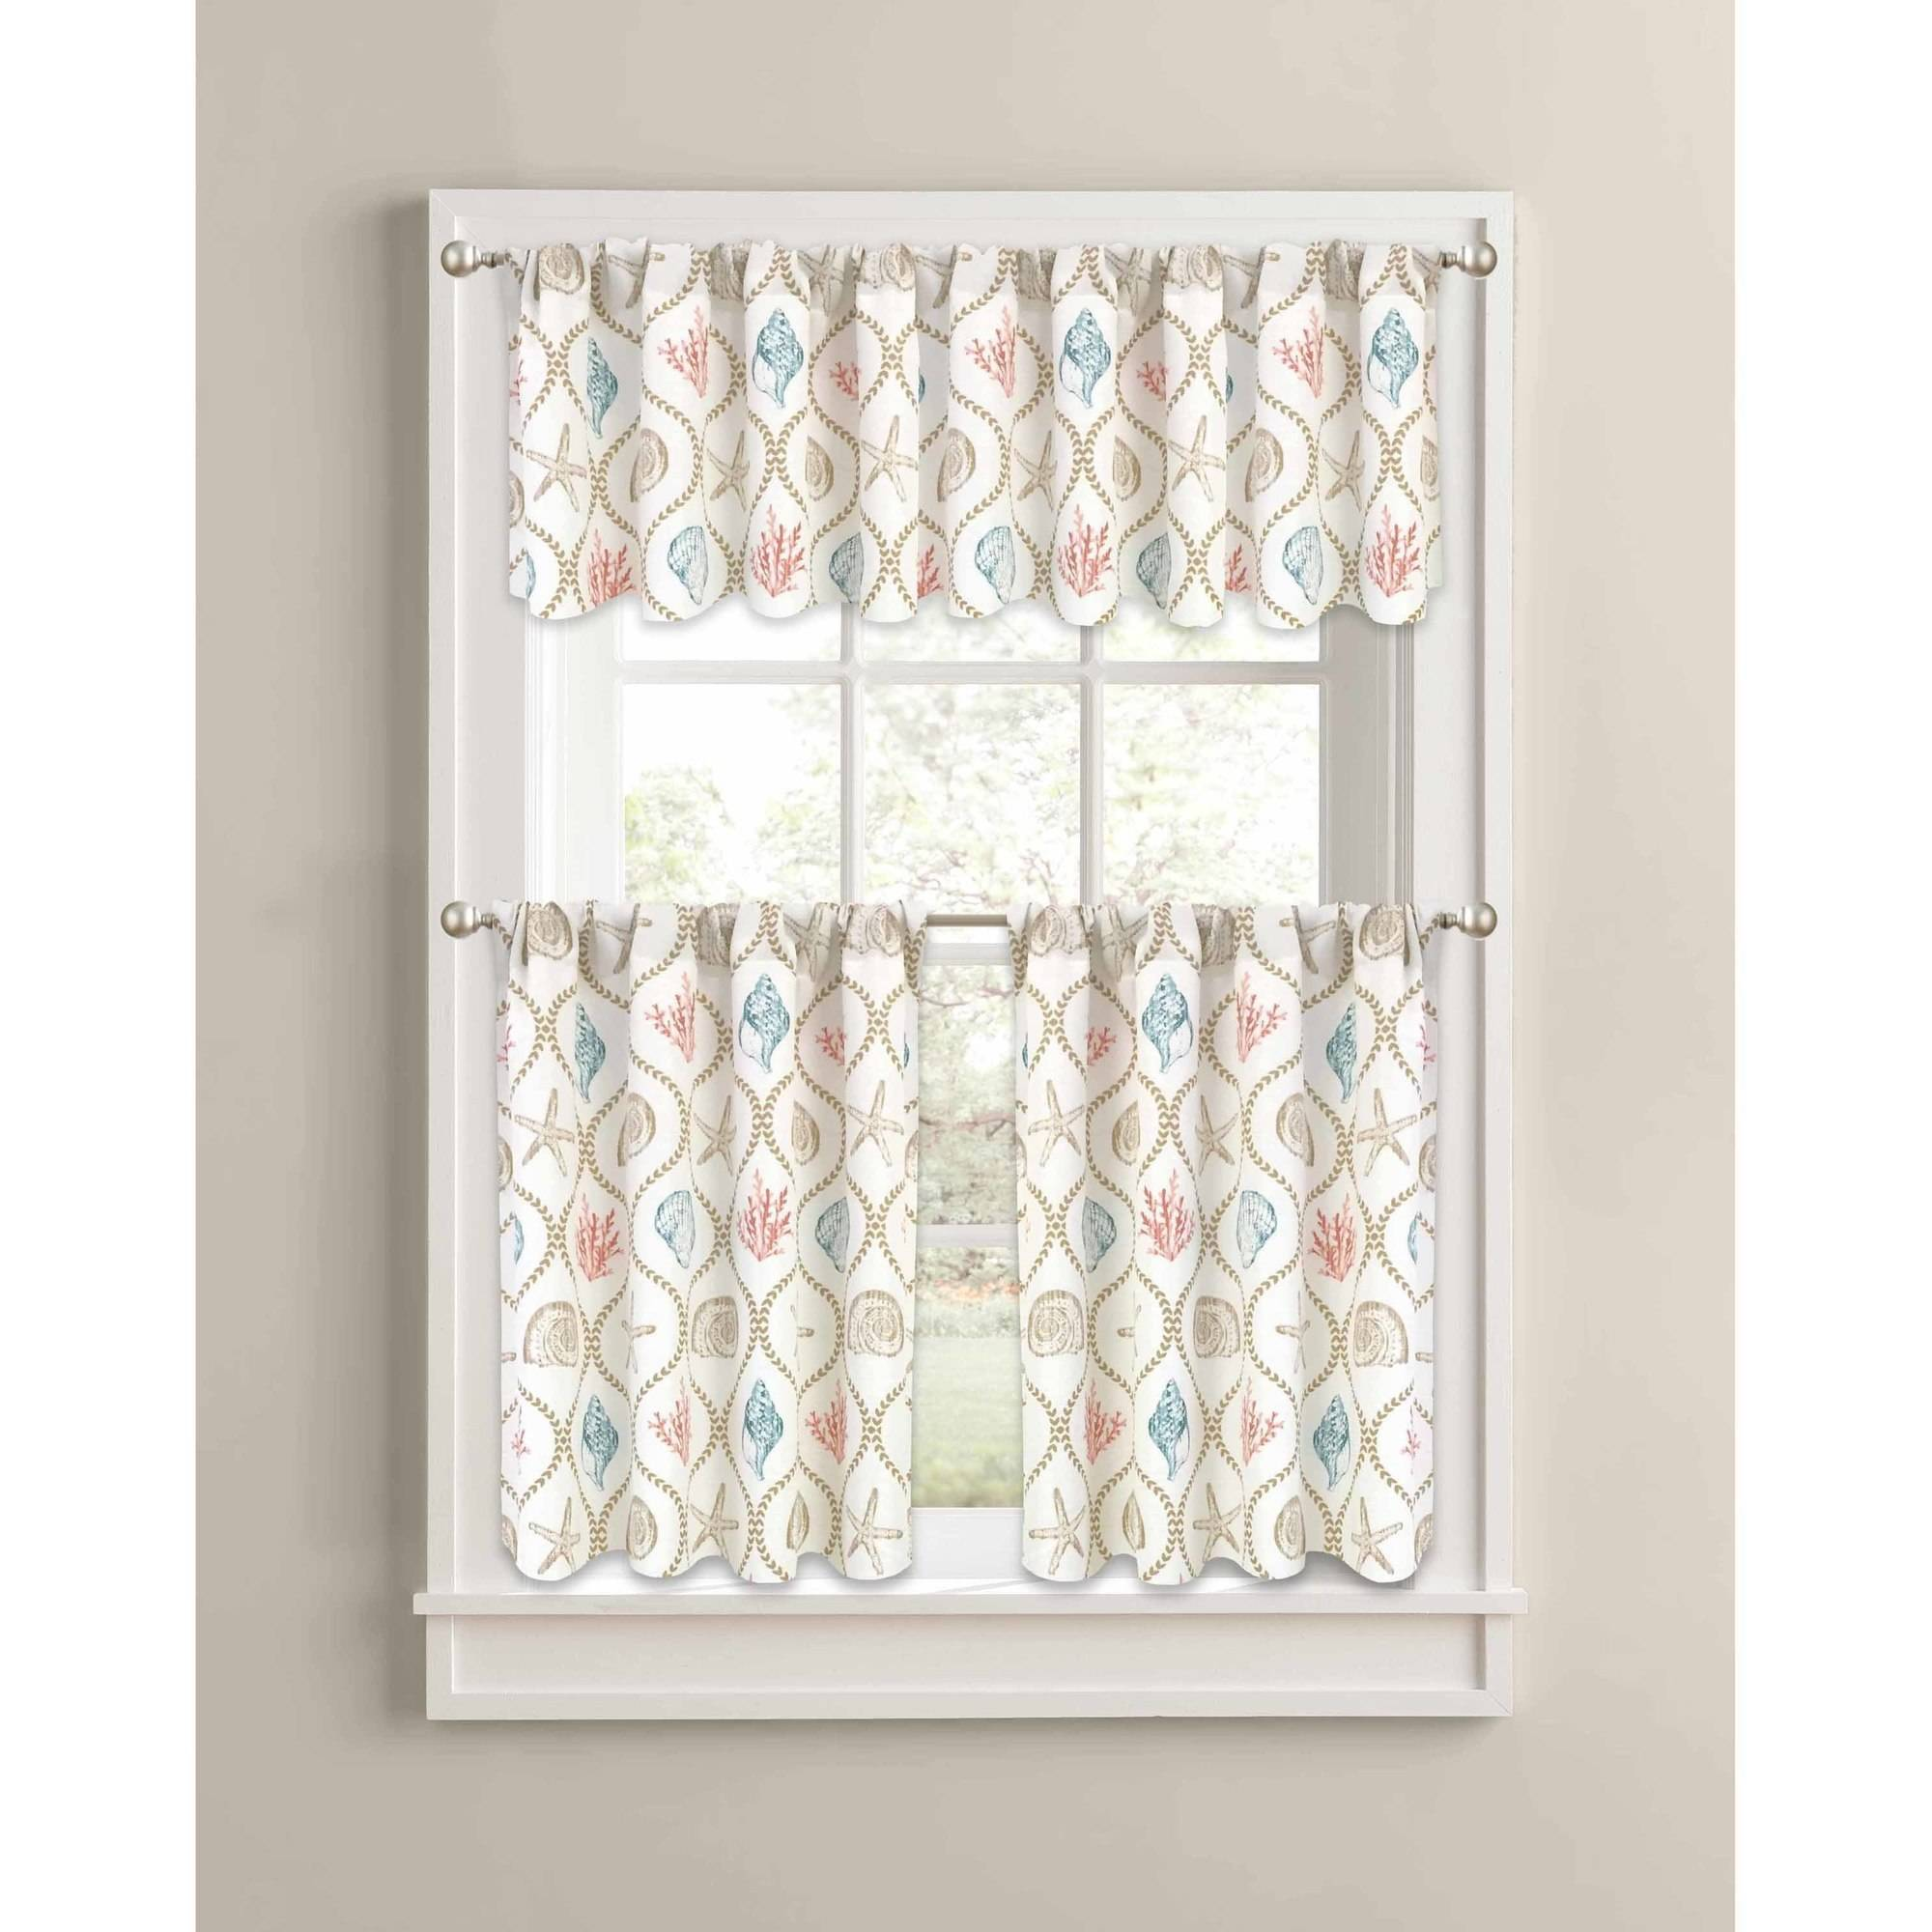 Better homes and gardens kitchen curtains - Better Homes And Gardens Coral Aqua Ogee Shells Kitchen Curtains